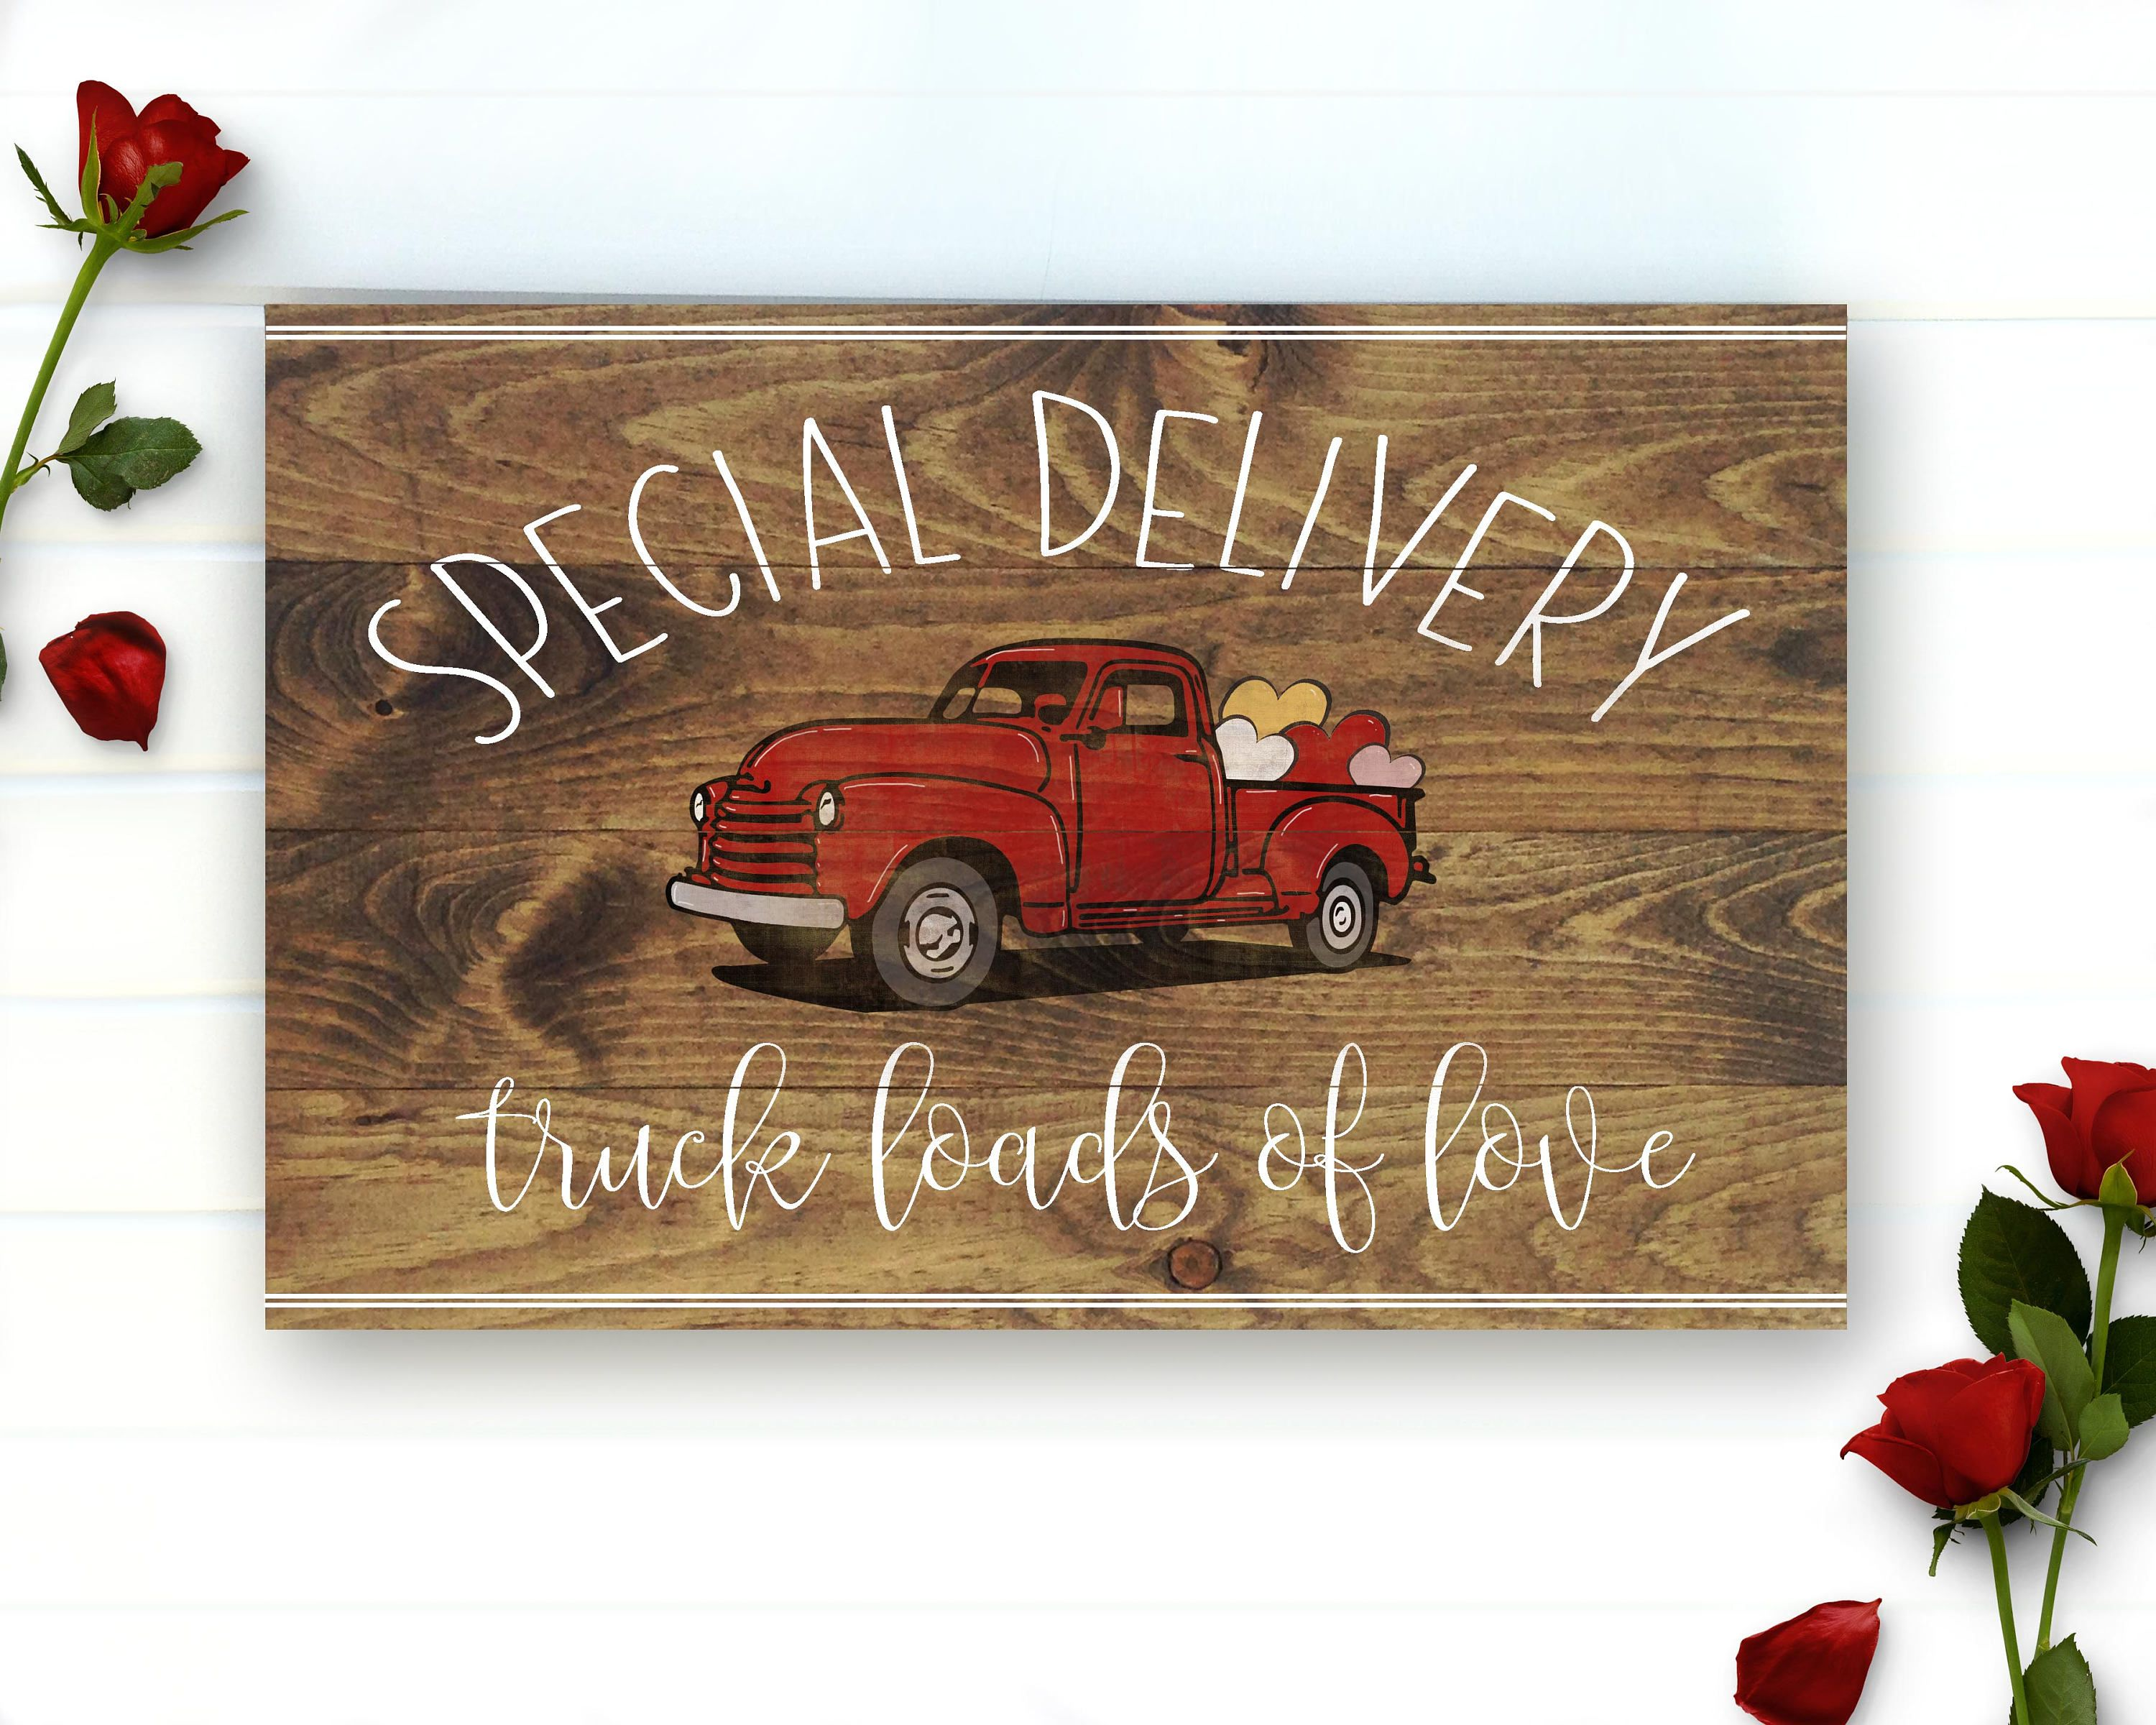 Primitive Old Red Truck Support Your Local Farmers Chippy Wood Sign Print 8x10